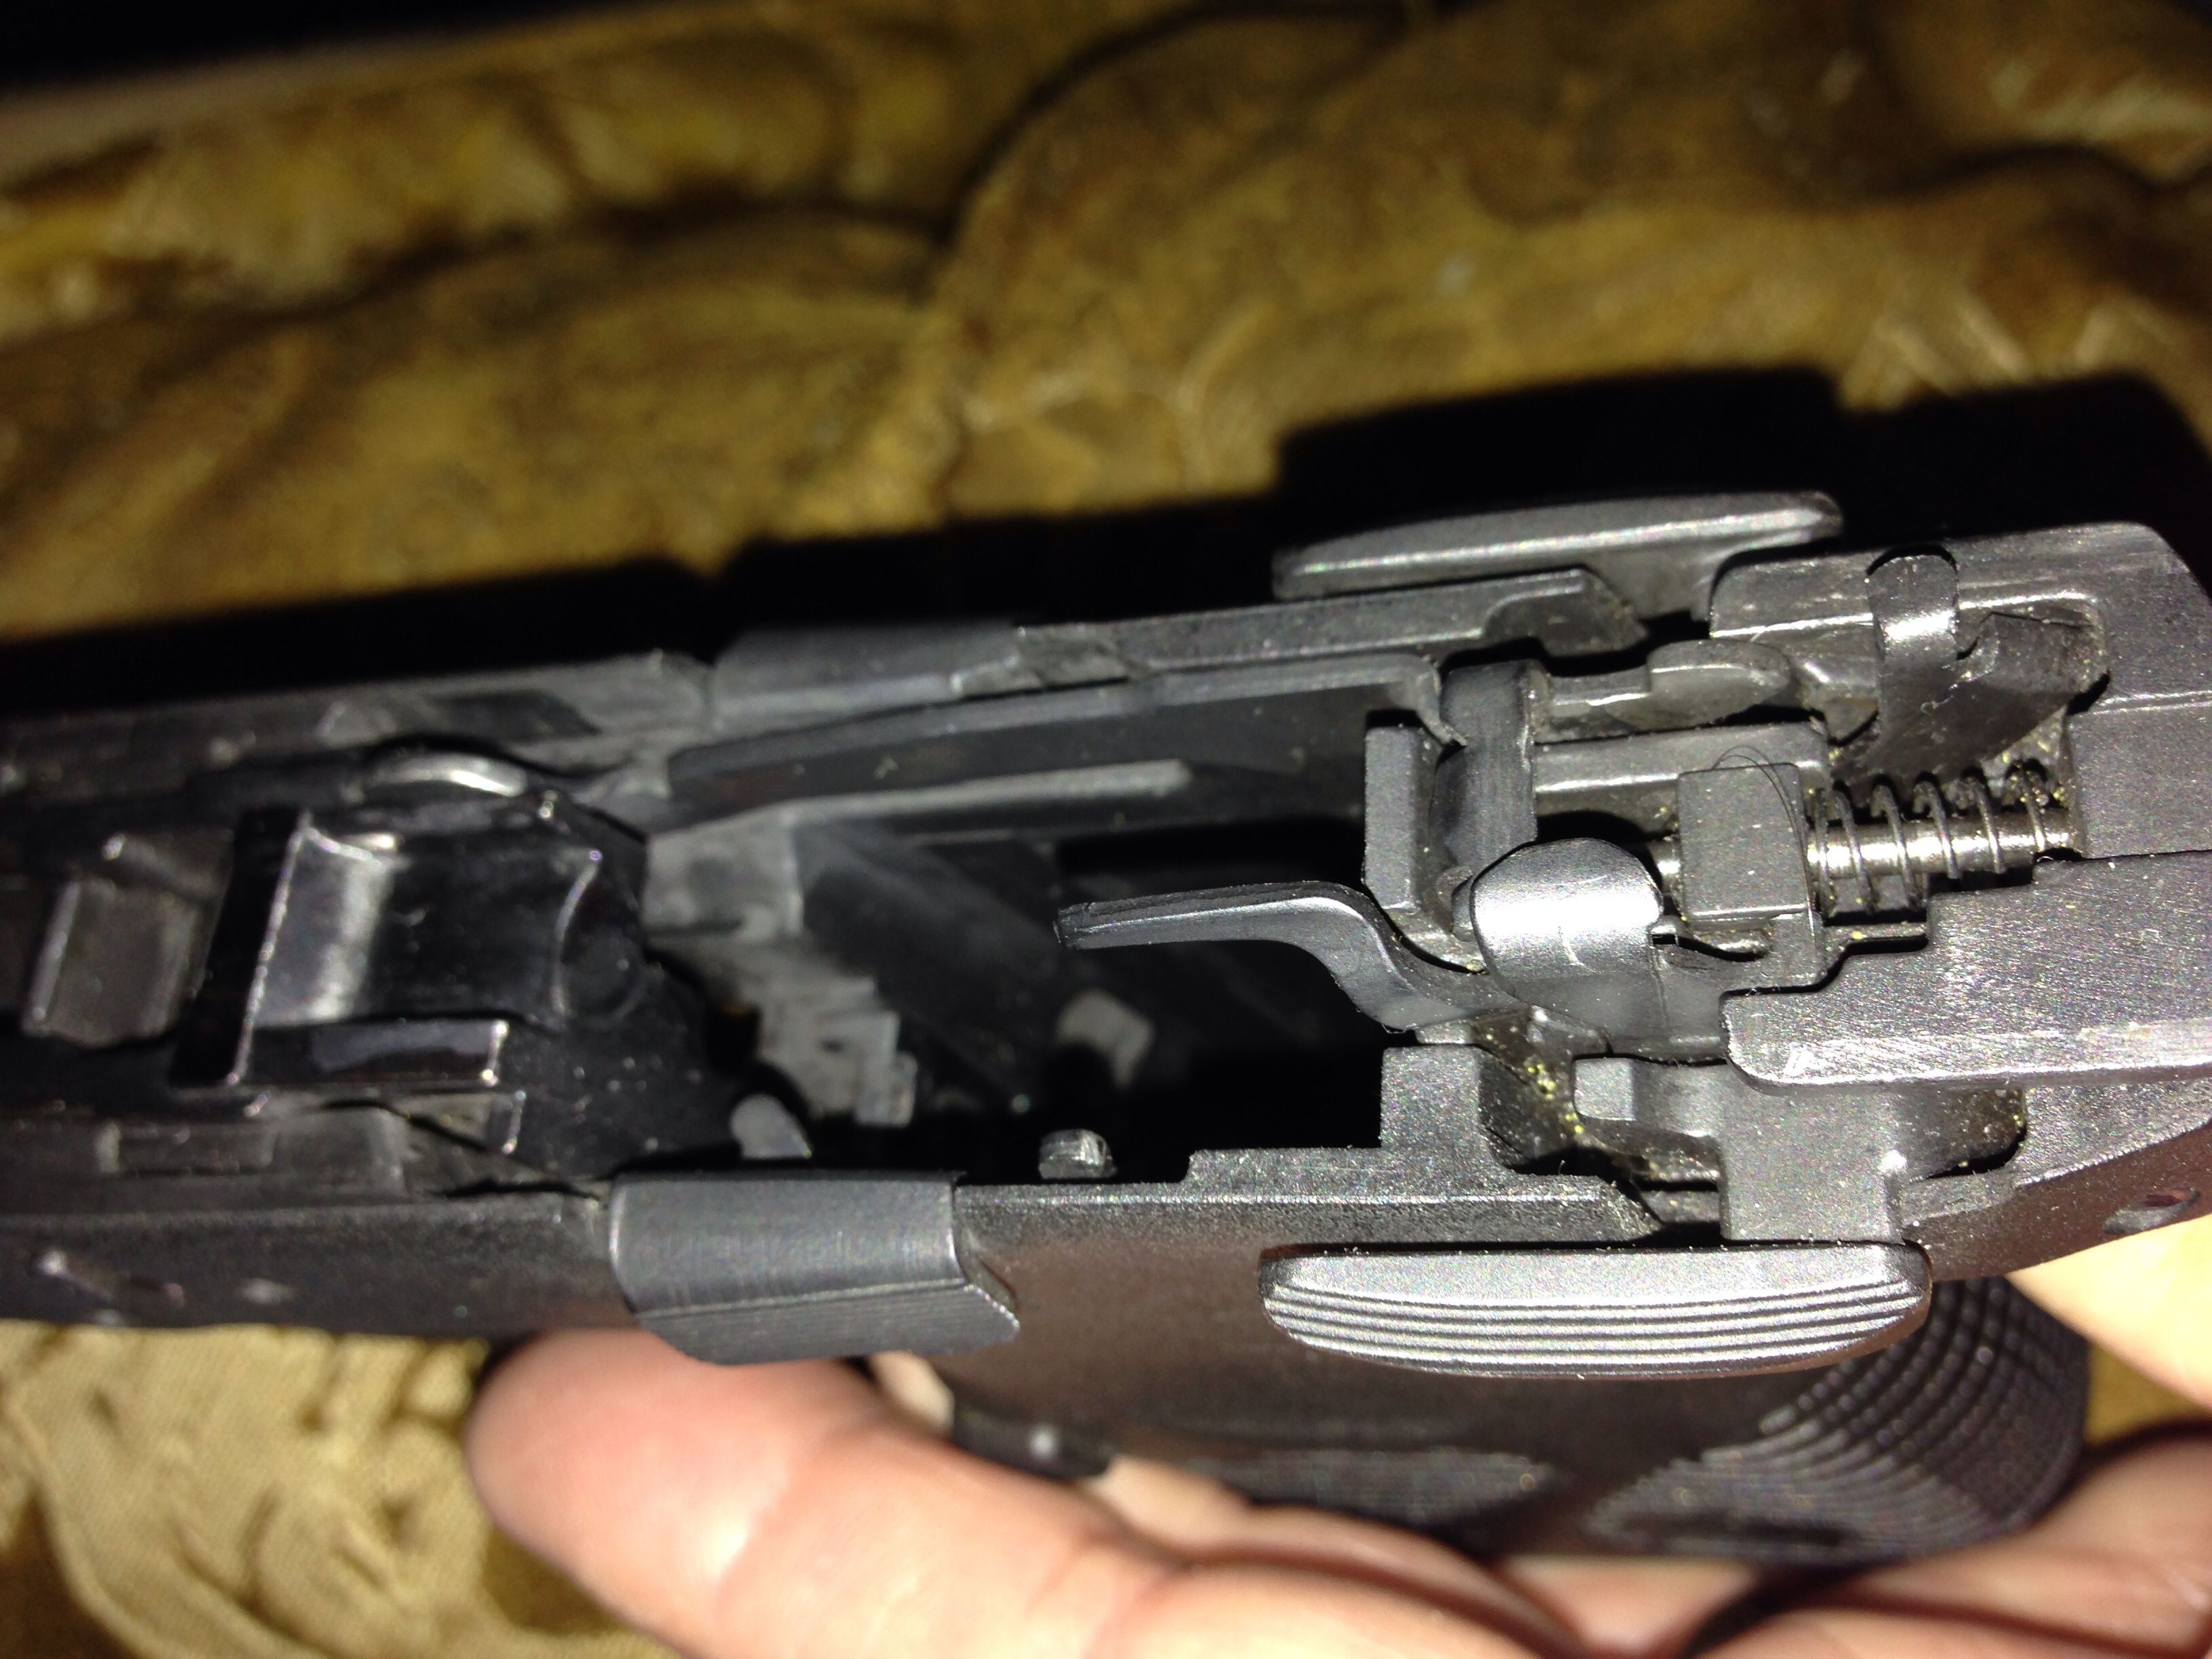 Anyone have a pic of the 24/7 G2 trigger spring/trigger